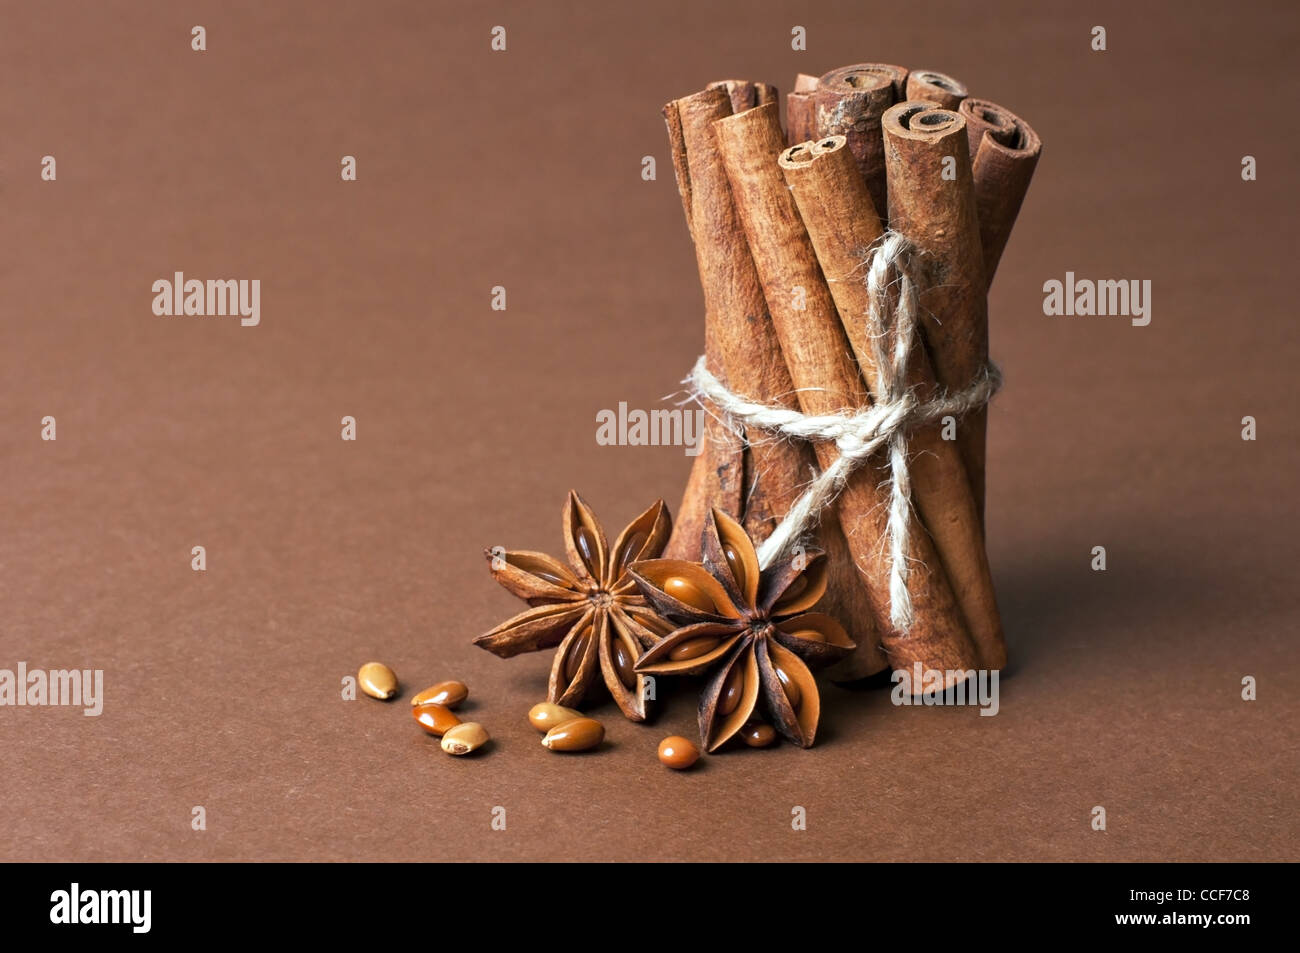 Cinnamon stick and anise stars on brown background - Stock Image